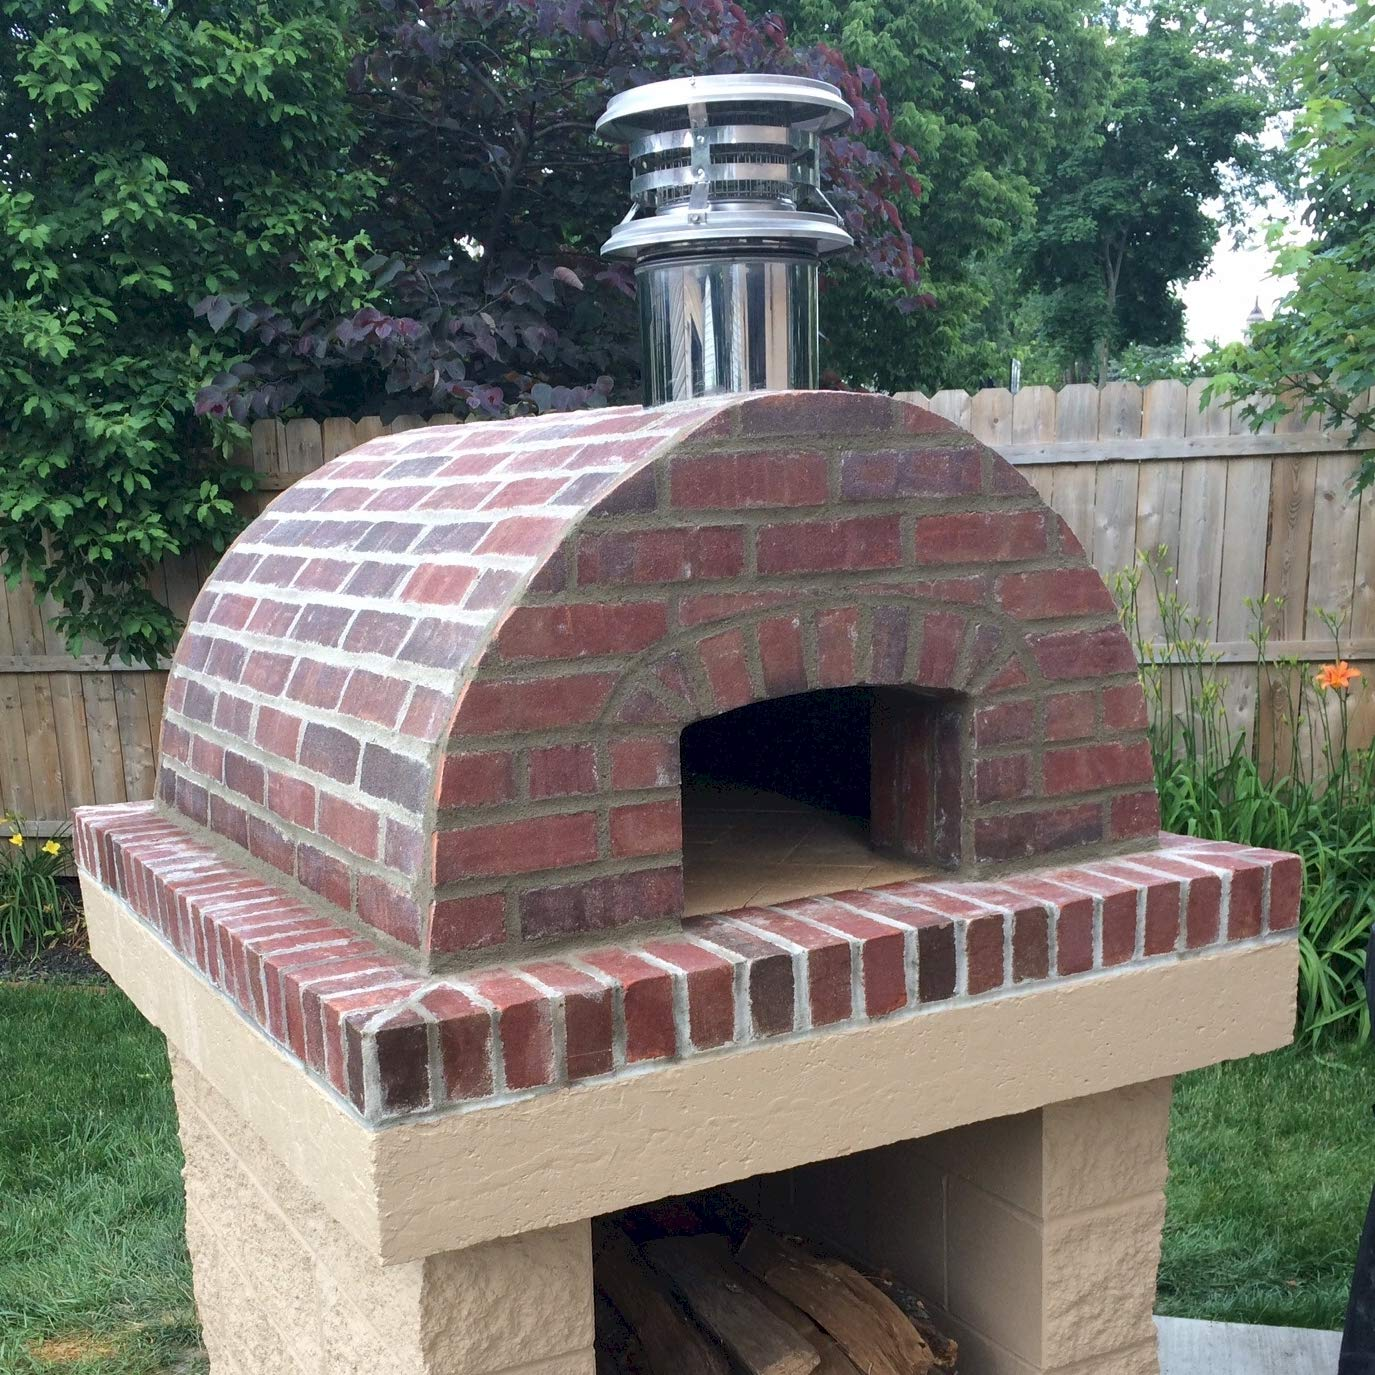 Pizza Oven Kit • Brick Oven - Build a Wood Fired Pizza Oven from Refractory Cement, Stainless Concrete Fibers and Our 5-Piece Cortile Barile Foam Pizza Oven Molds. Cast-N-Place/DIY-EZ!